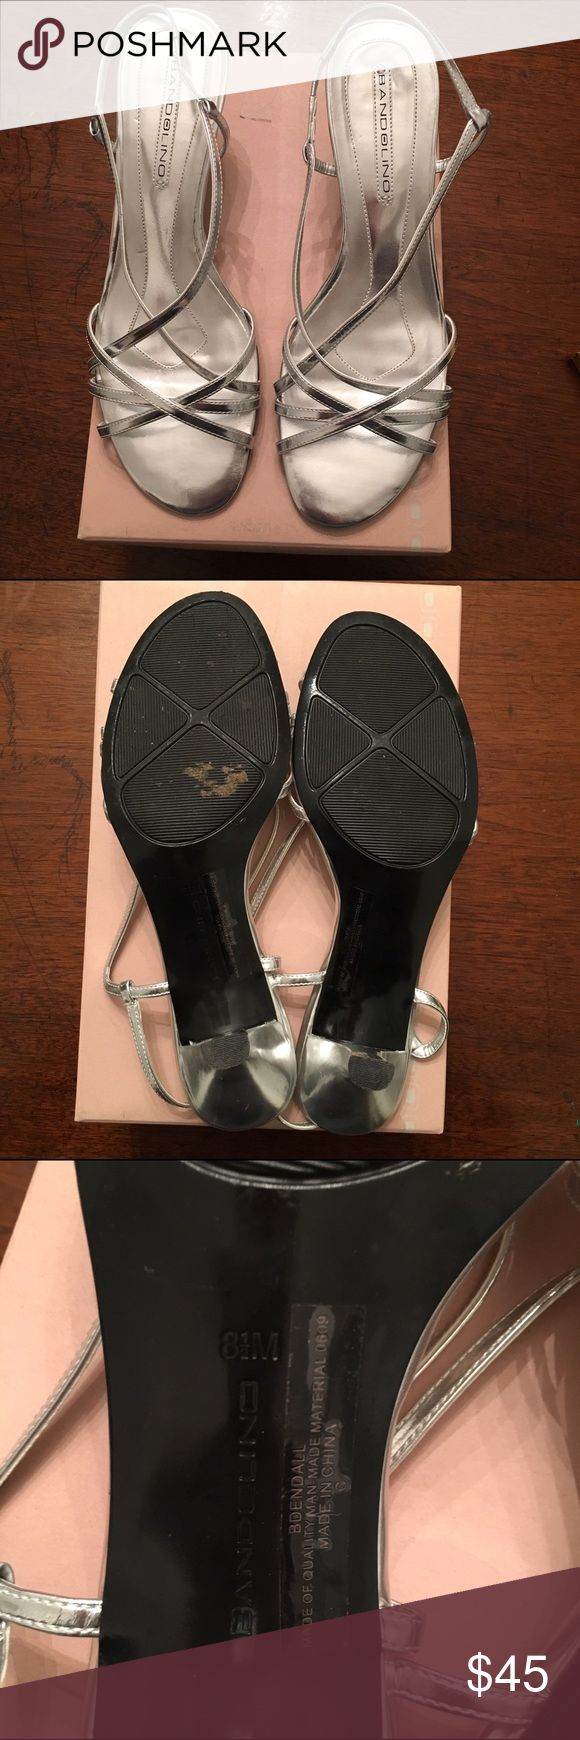 Bandolino silver strappy heels size 8.5 Bandolino silver strappy heels size 8.5. Worn for a total of two hours at a wedding. Heel is about 2 inches. Heel has a few knicks but nothing you can even notice. ( see photos ) They are in practically new condition. Bandolino Shoes Heels